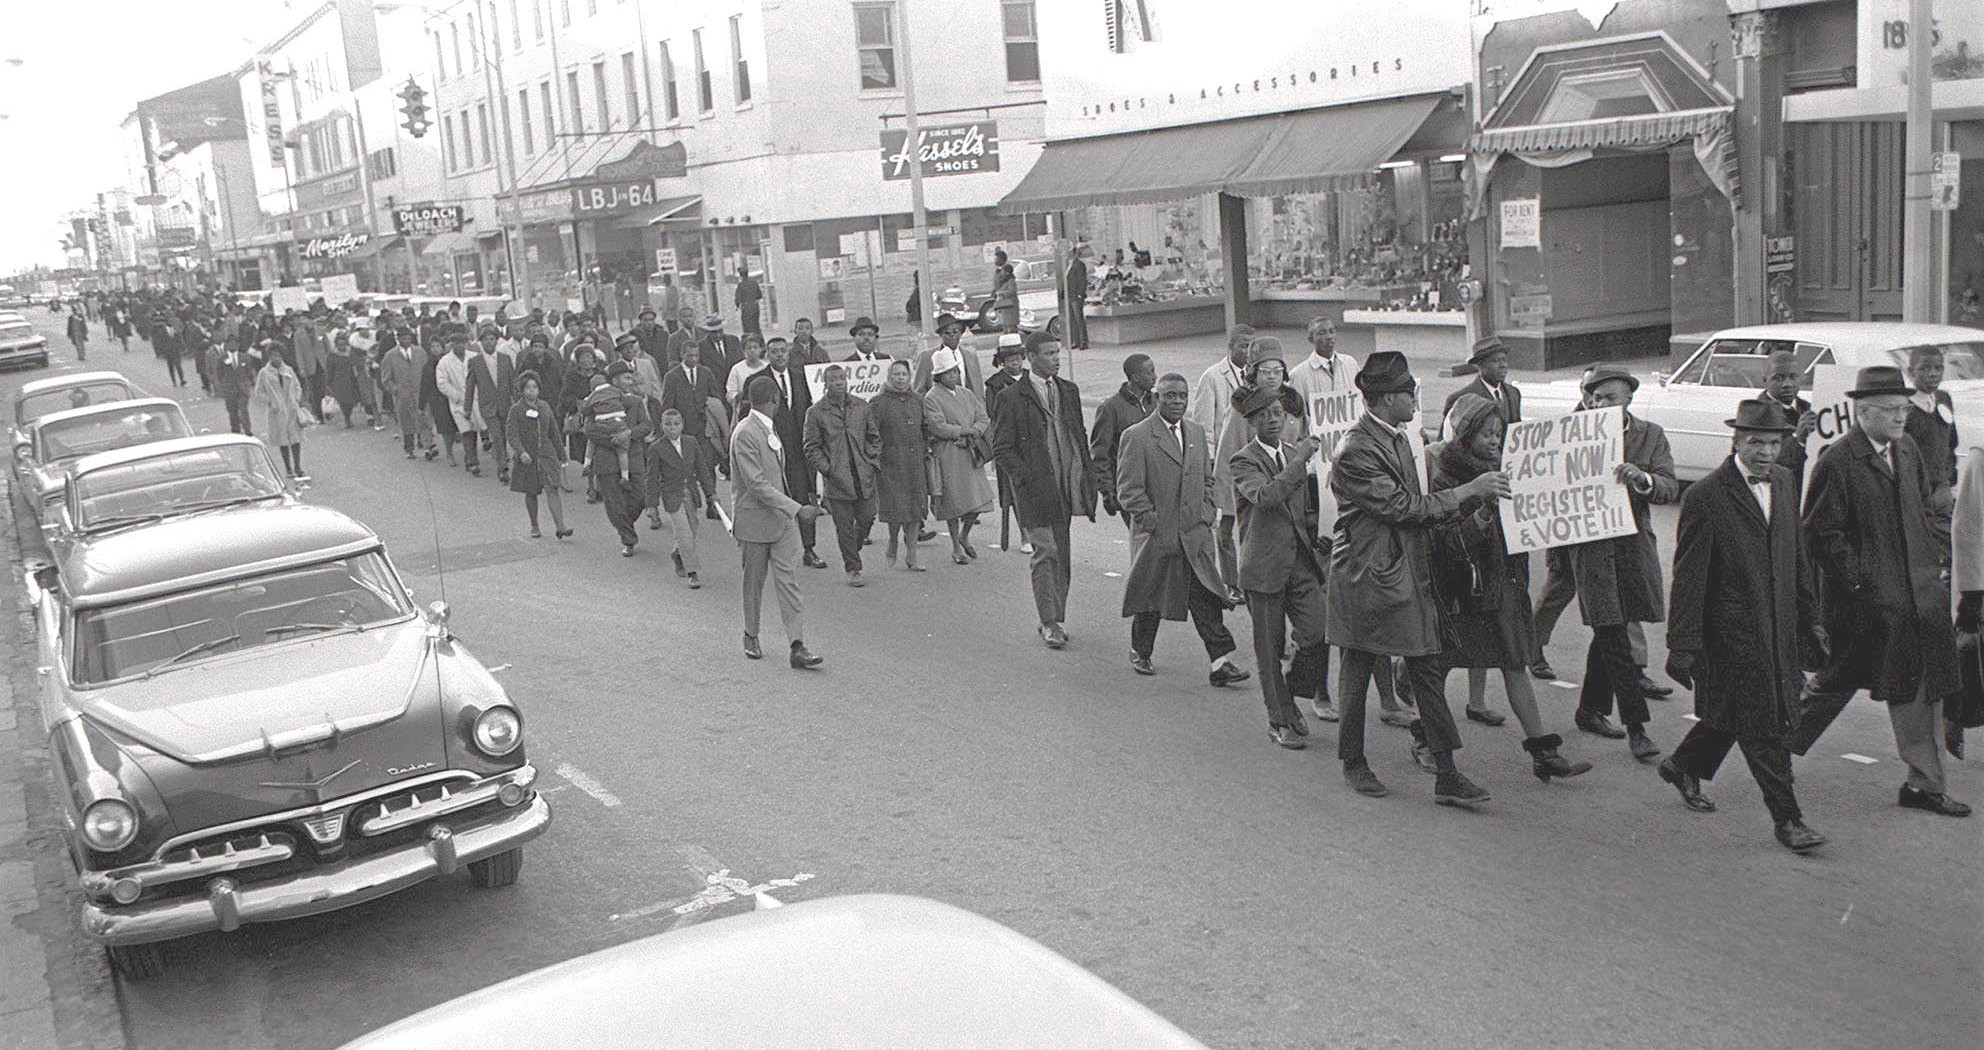 Savannahians march to Chatham County Courthouse in support of Selma voters registration drive Savannah Morning News, 21 March 1965. Courtesy of Robert McDonald and Savannah Morning News